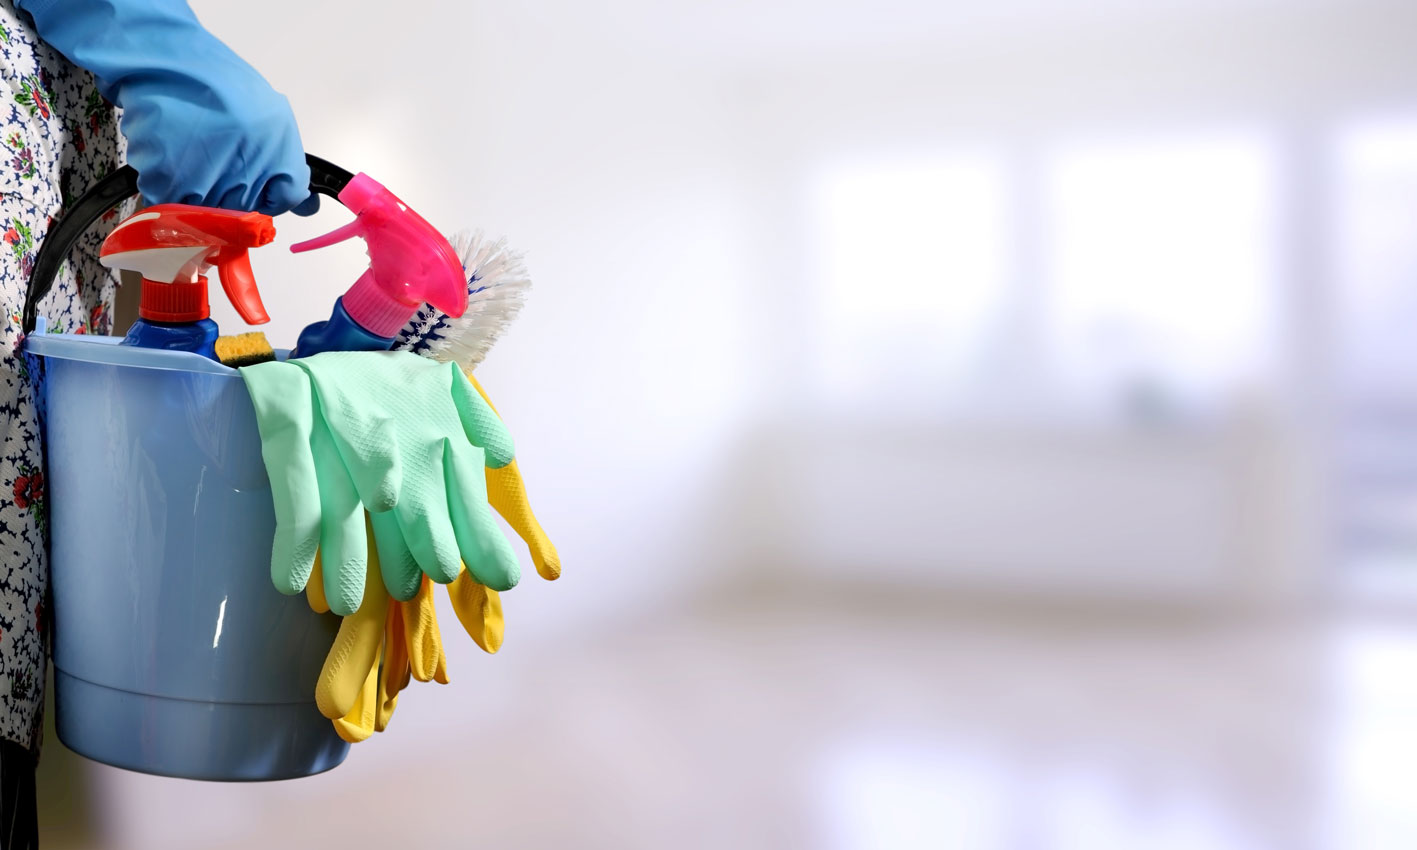 improving performance in cleaning company sheenco essay